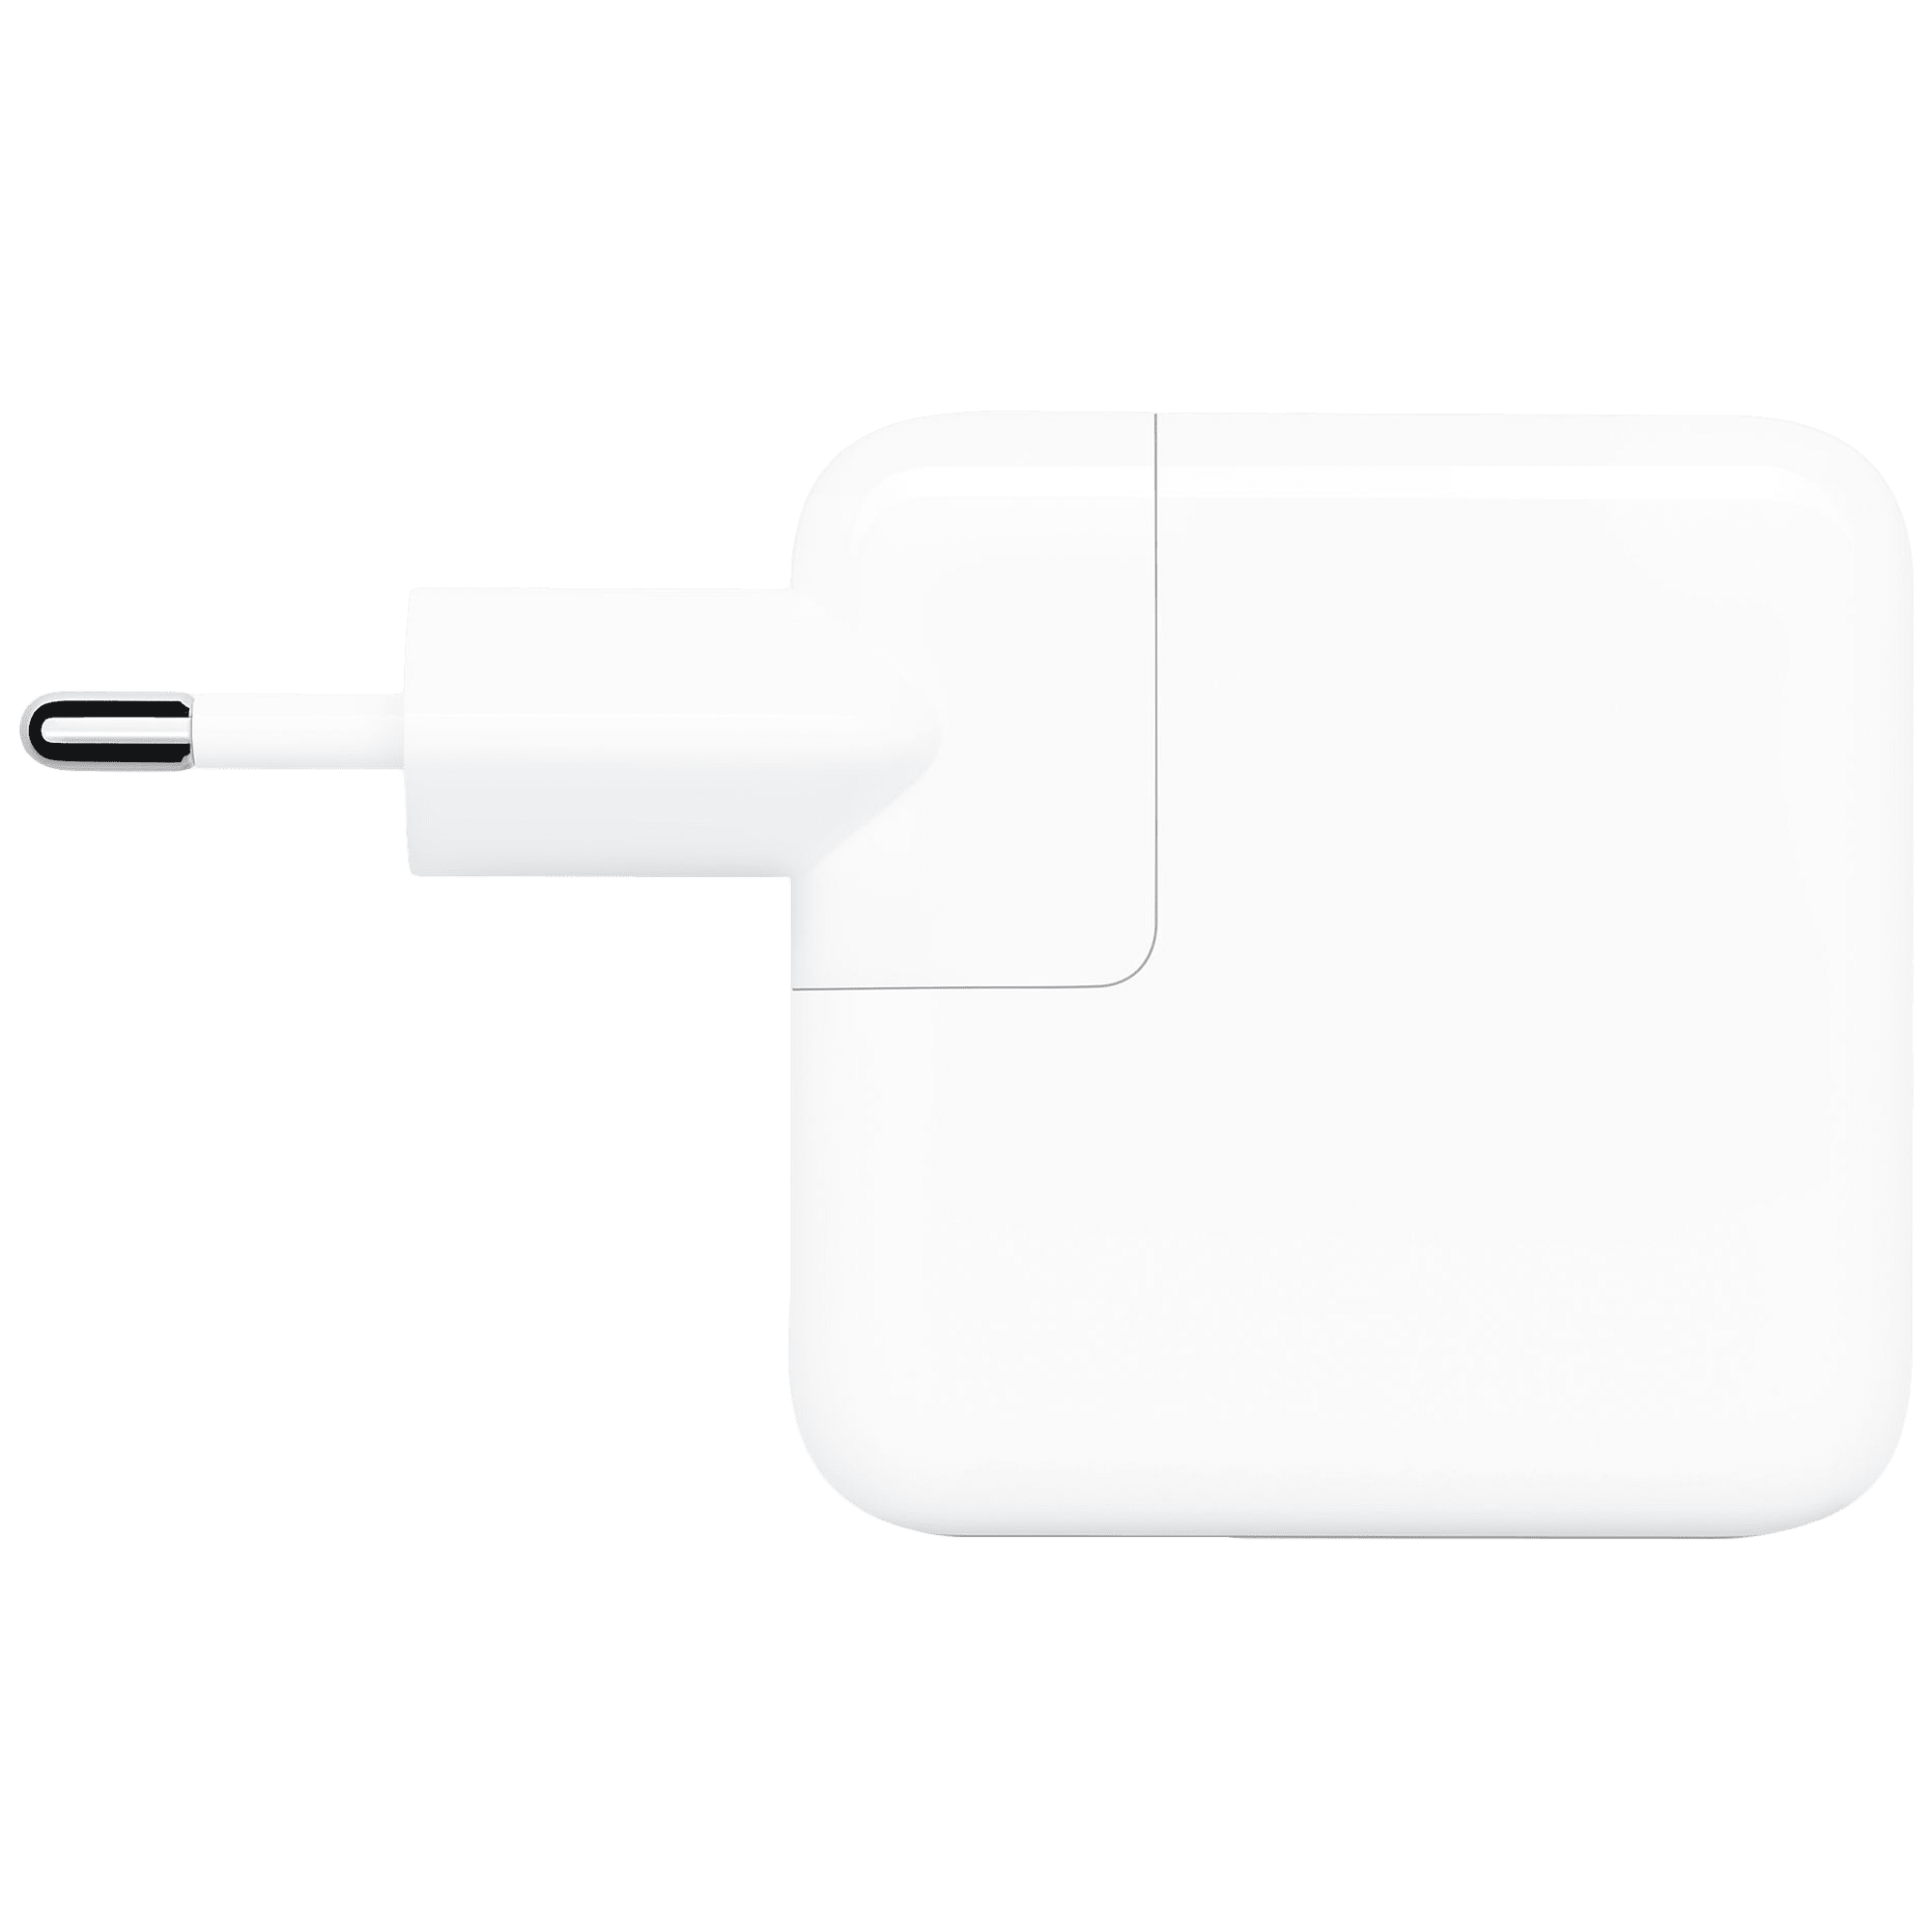 Apple 30 Watts 1-Port Wall Charging Adapter (Fast Charging Capability, MY1W2HN/A, White)